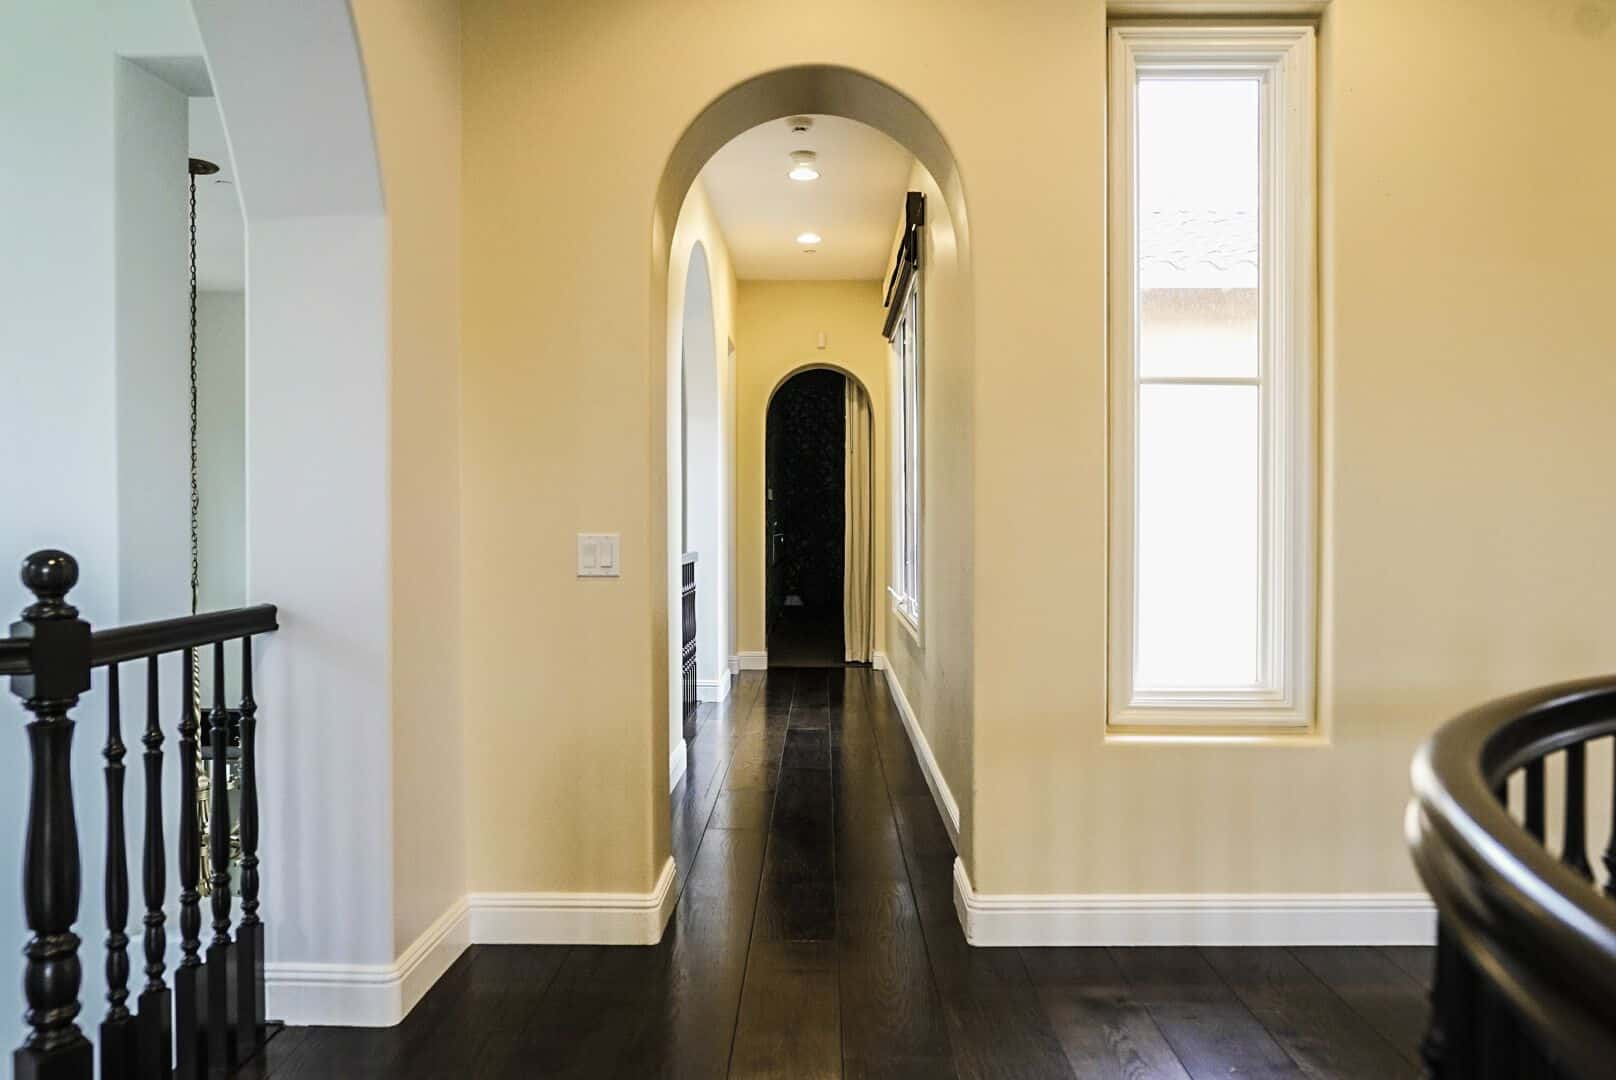 A hallway leading to the indoor amenities, featuring hardwood floors and beige walls. Images courtesy of Toptenrealestatedeals.com.